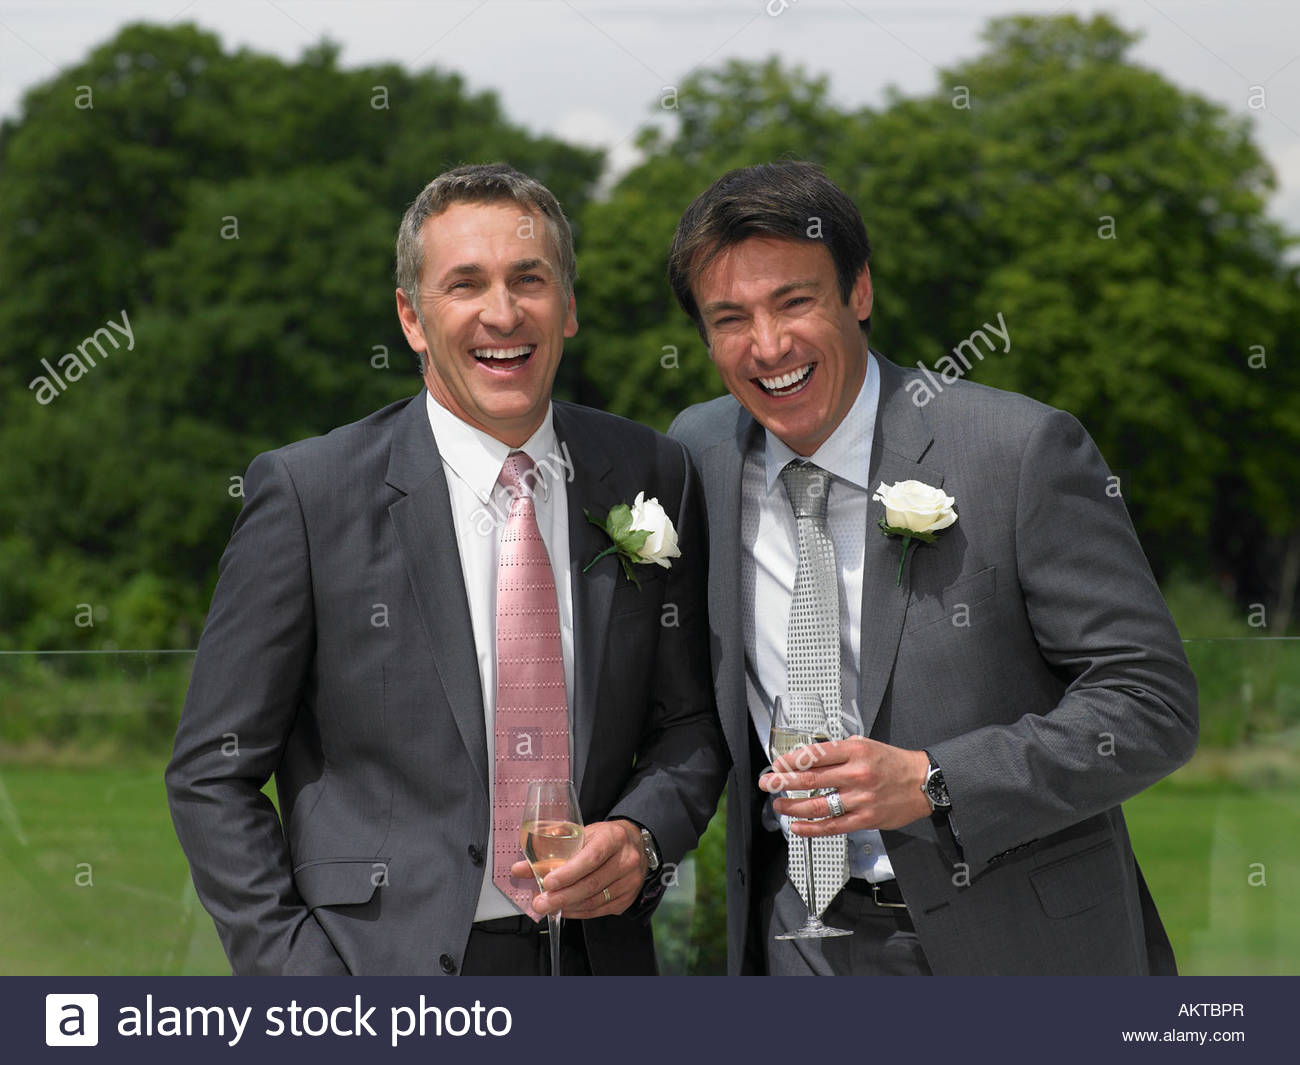 Portrait of the groom and the bestman - Stock Image